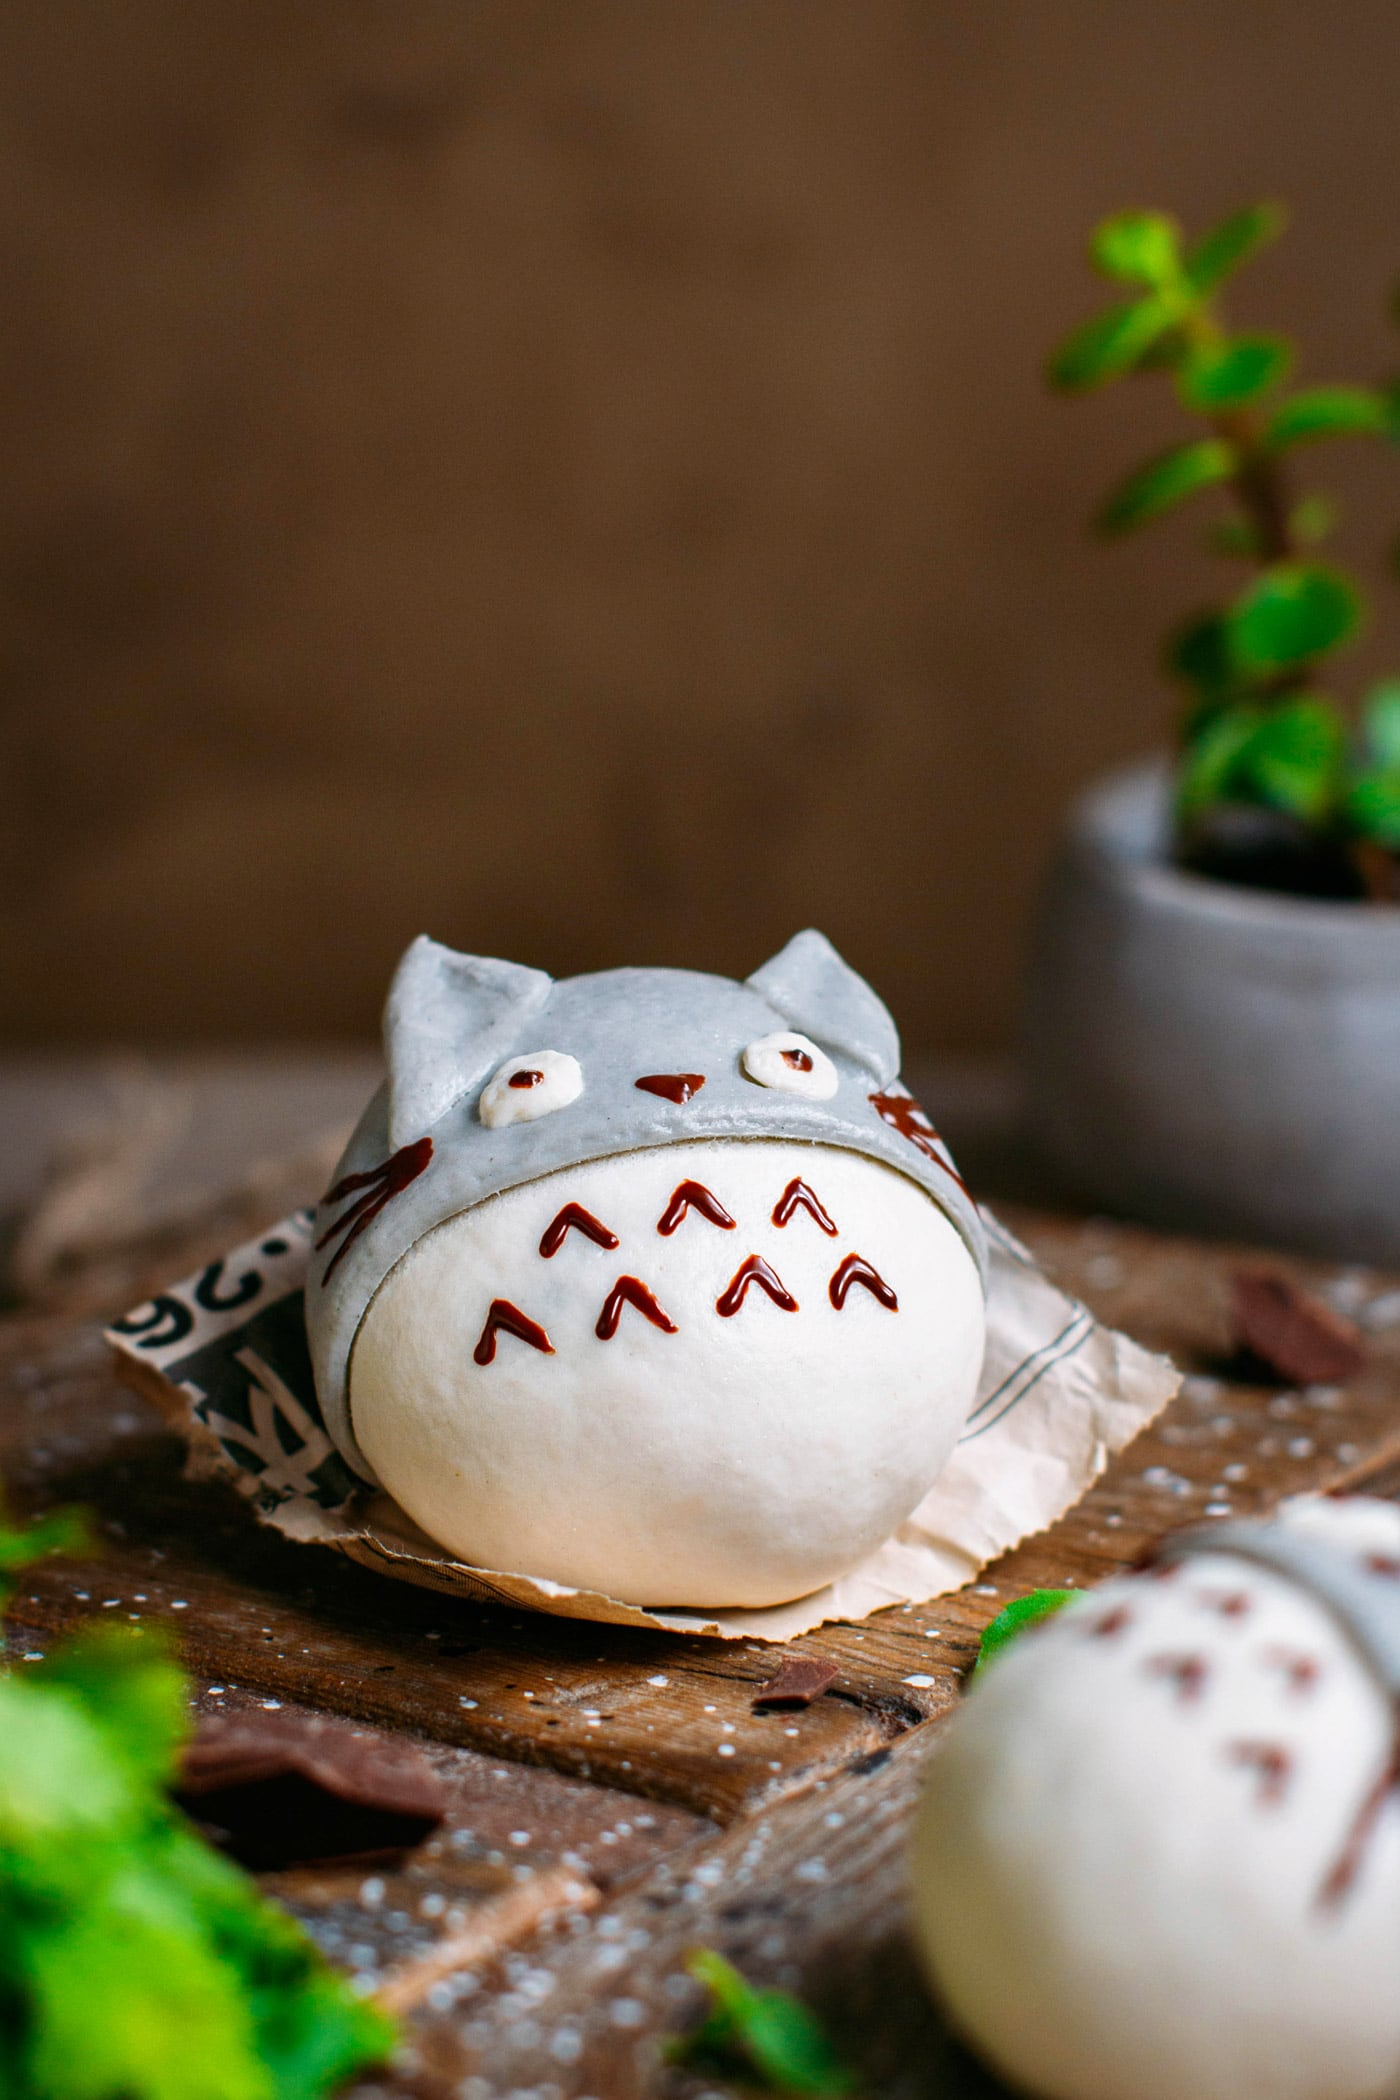 Totoro Steamed Buns (Chocolate Filled!)